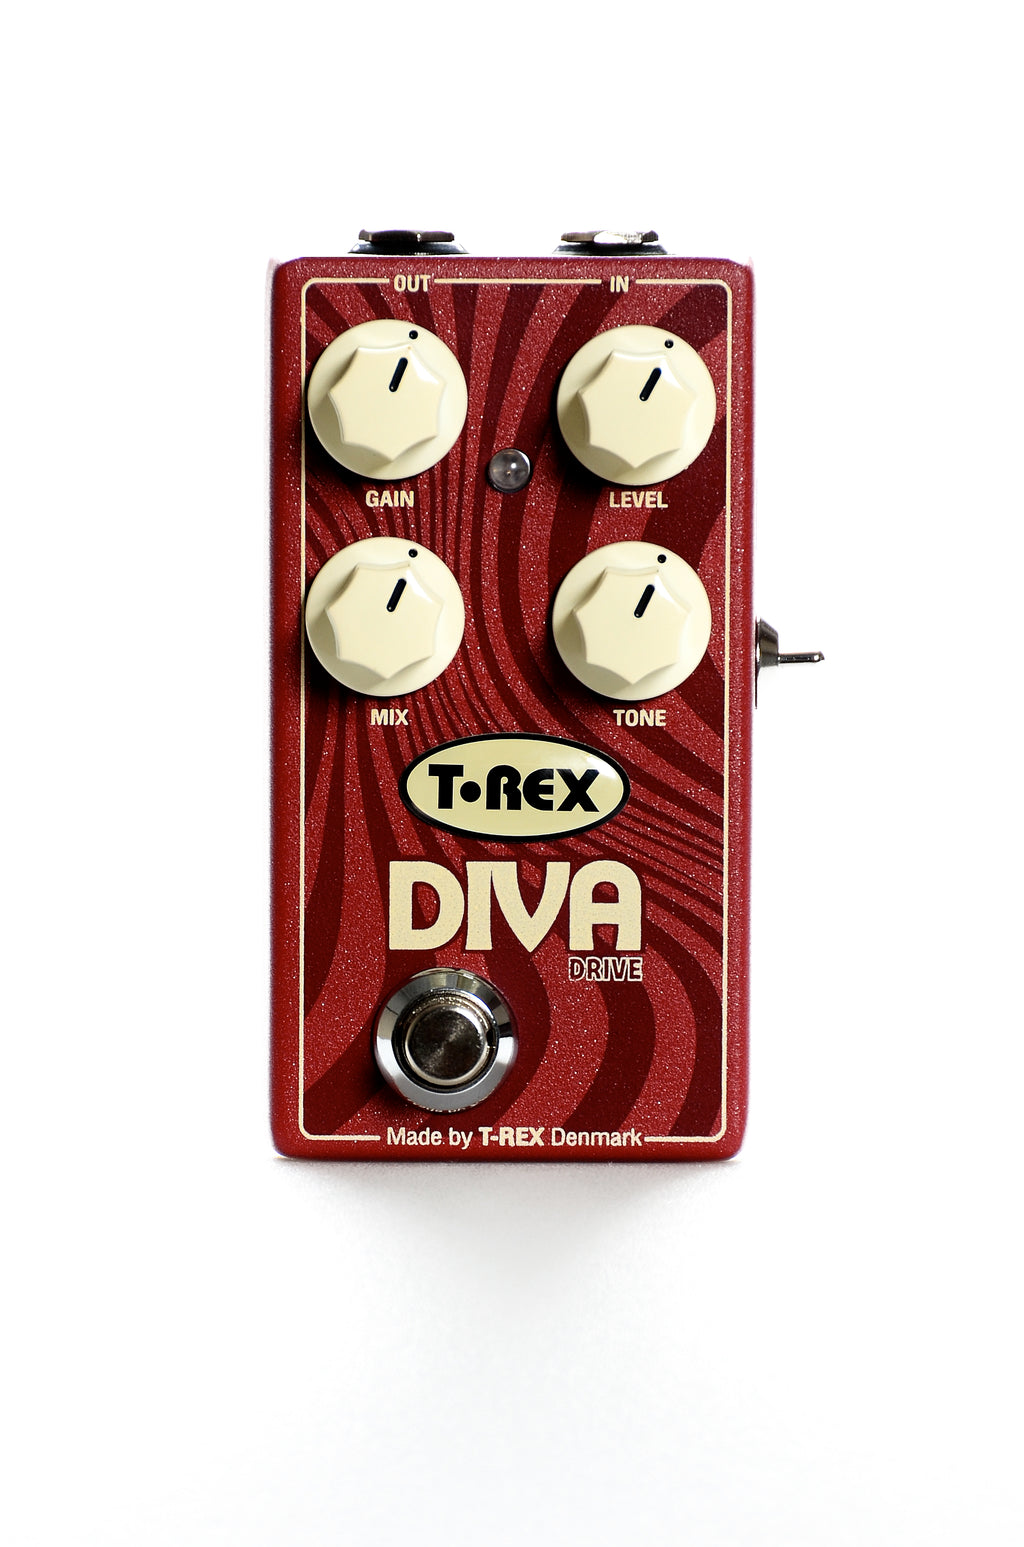 T-Rex Diva Drive Overdrive Pedal